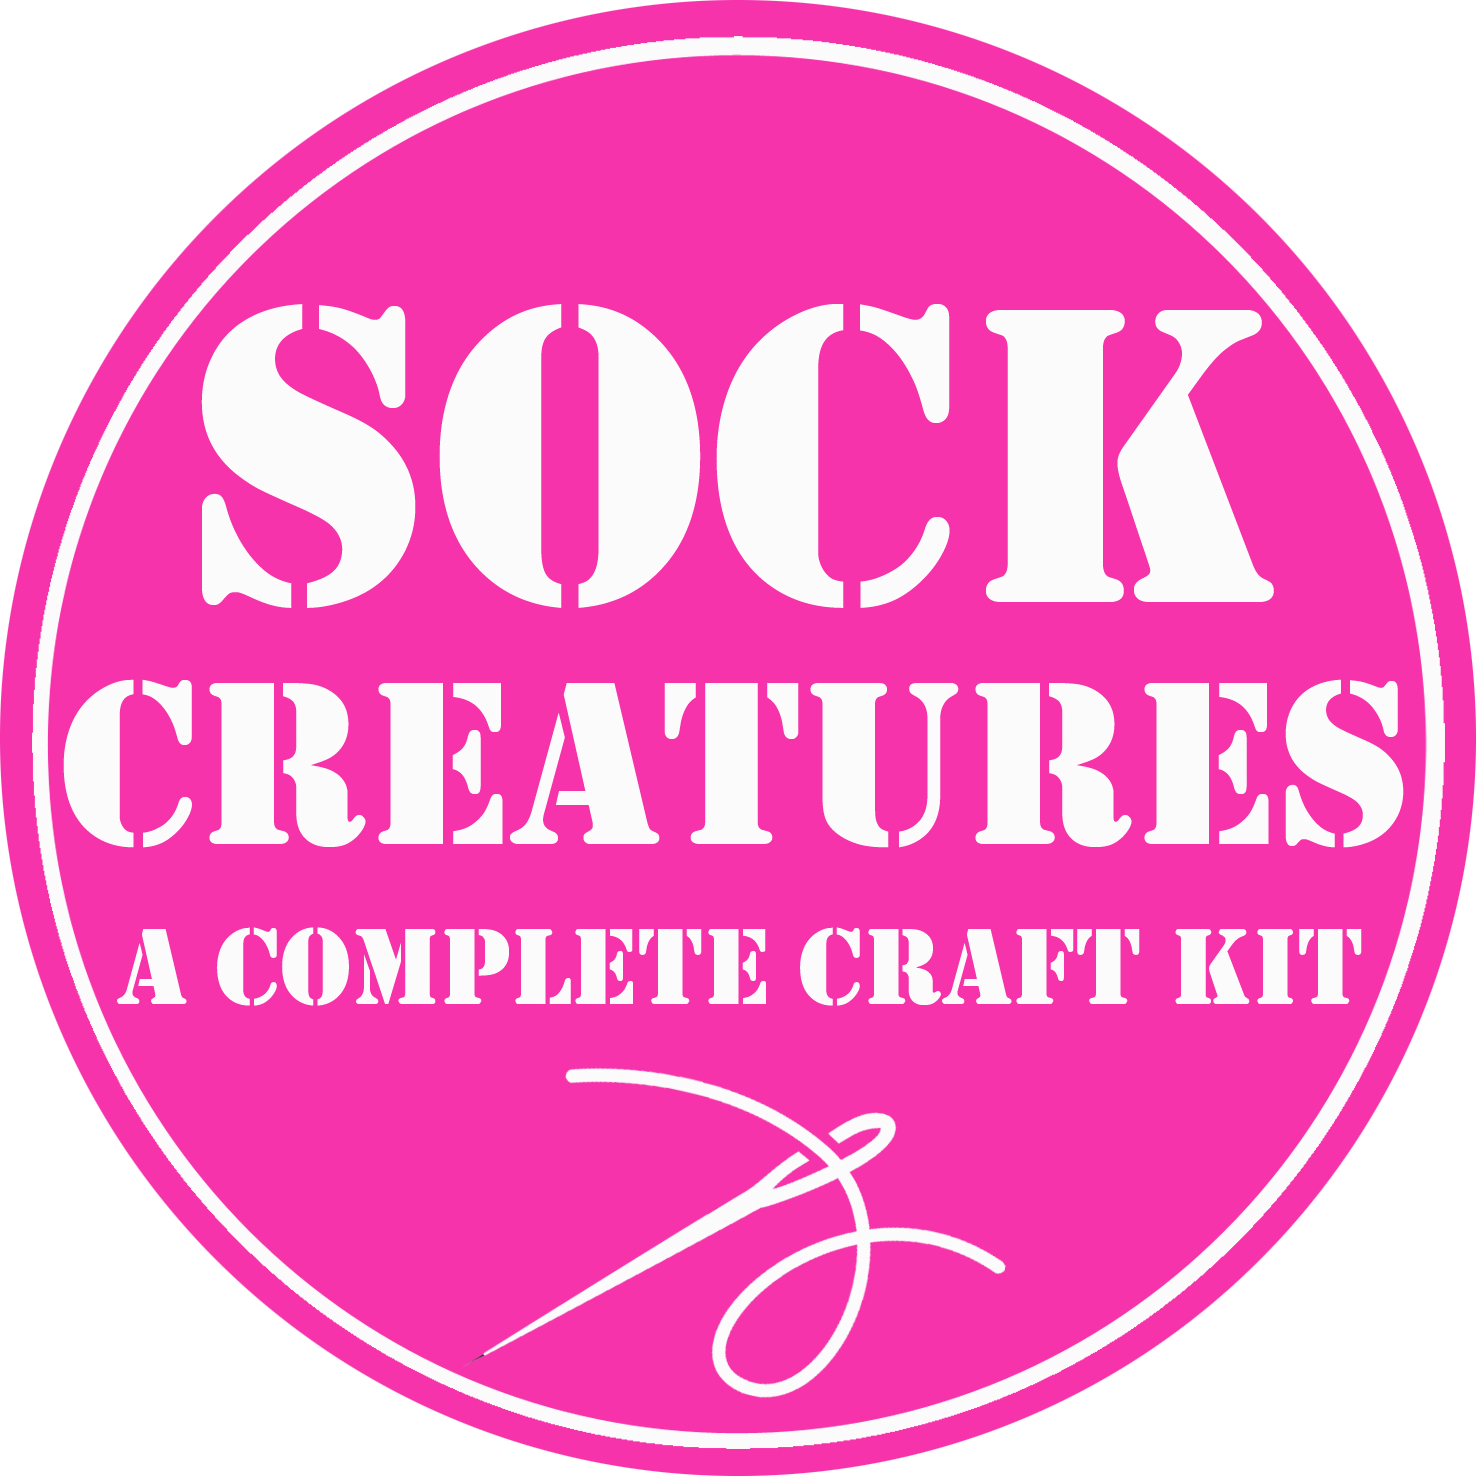 Sock Monkey Craft Kit by Sock Creatures